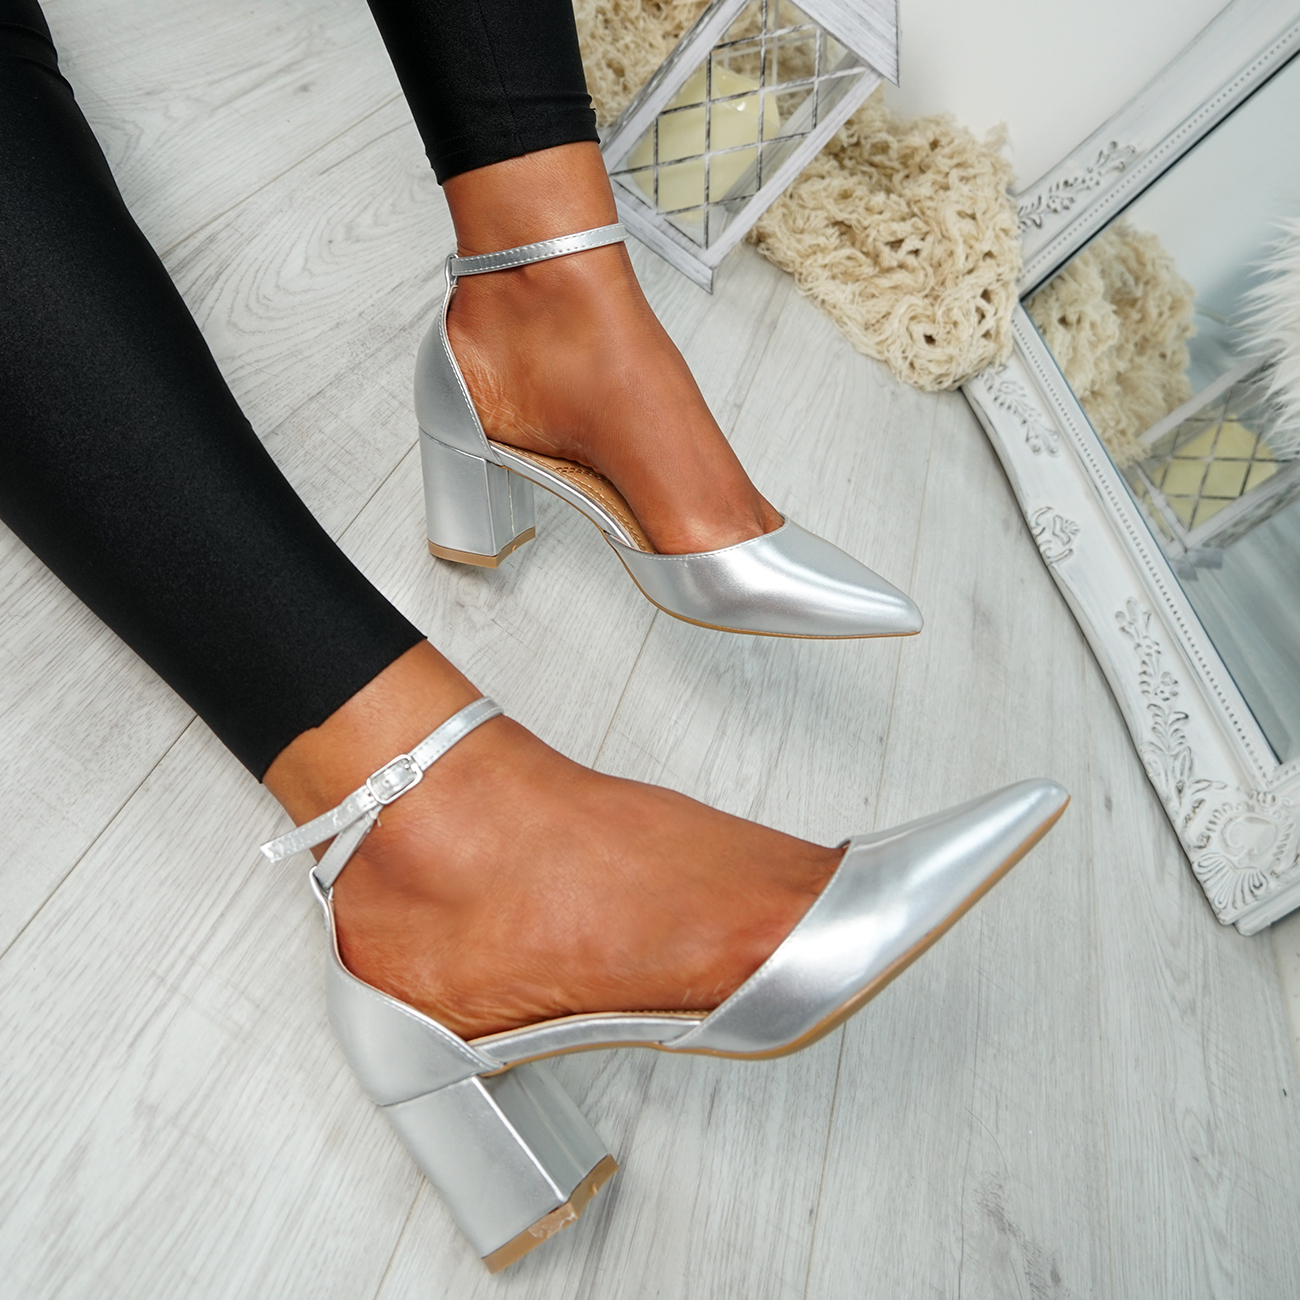 WOMENS-LADIES-ANKLE-STRAP-BLOCK-HEEL-PUMPS-POINTED-TOE-WORK-PARTY-SHOES-SIZE thumbnail 24